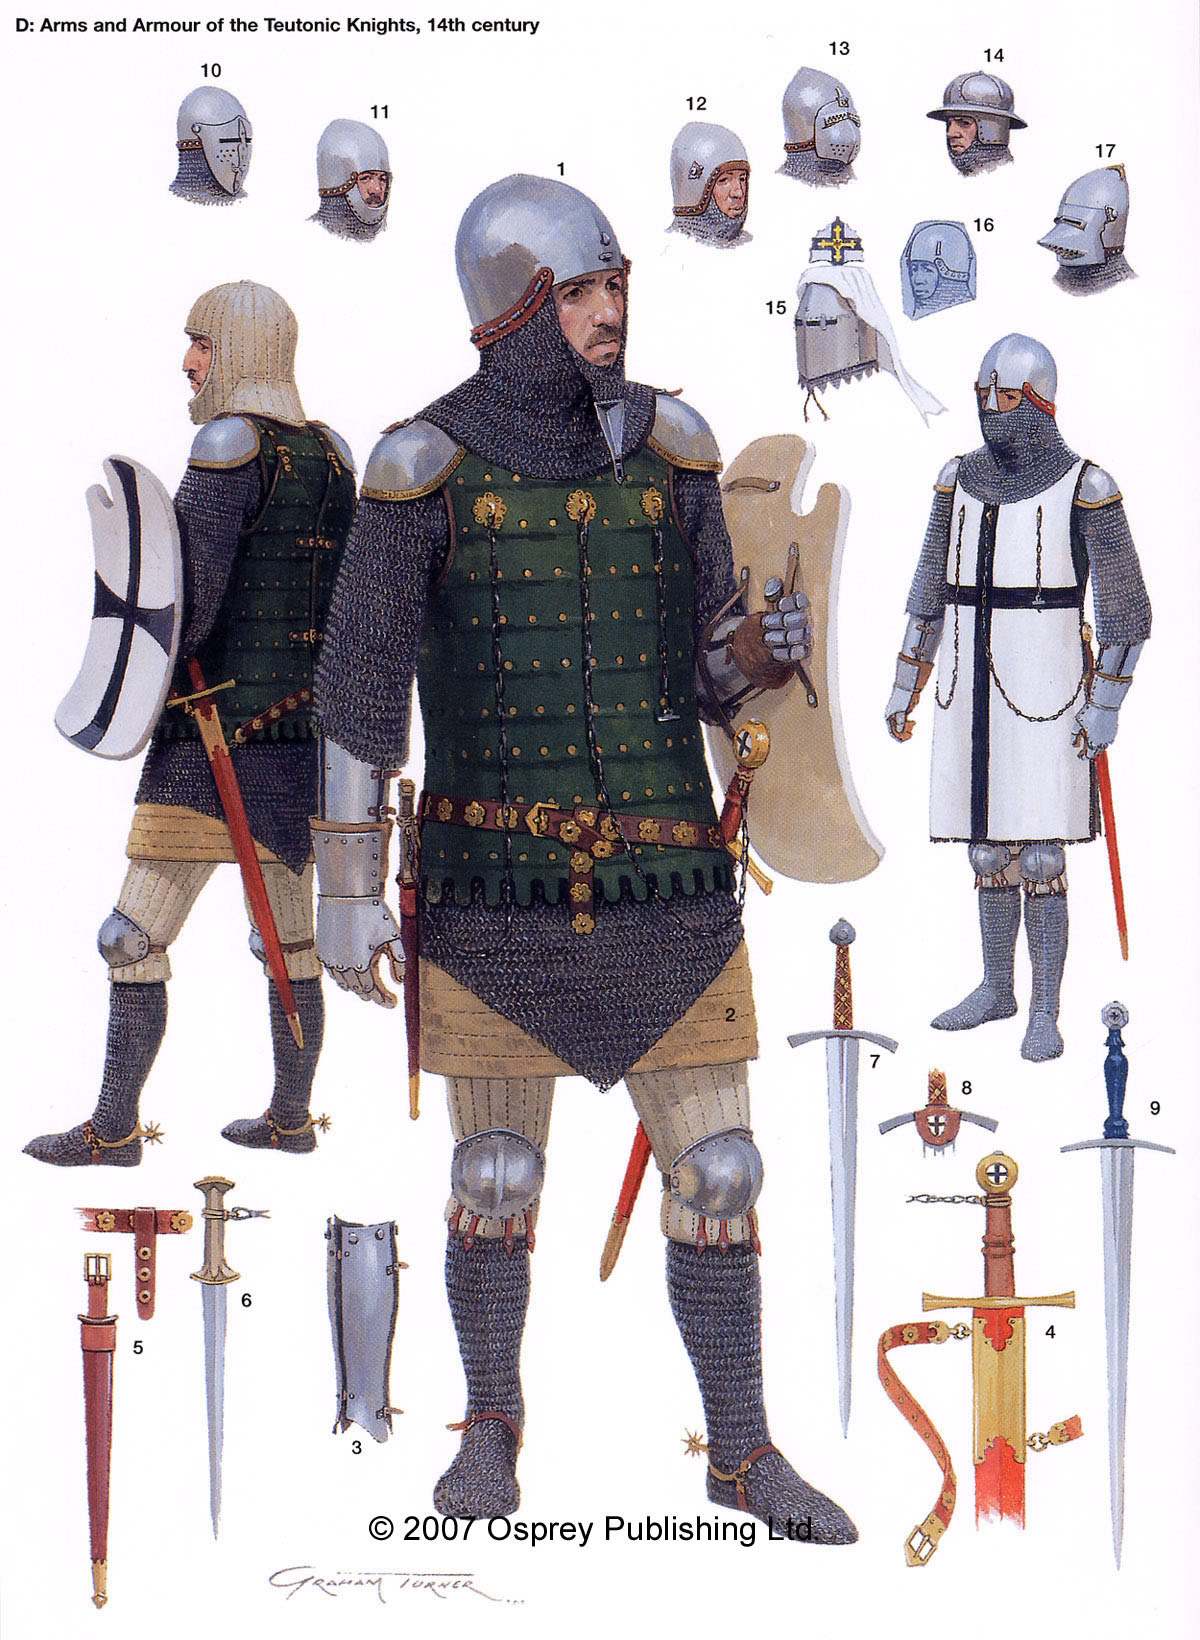 Drawn armor 14th century Of than Knight the some